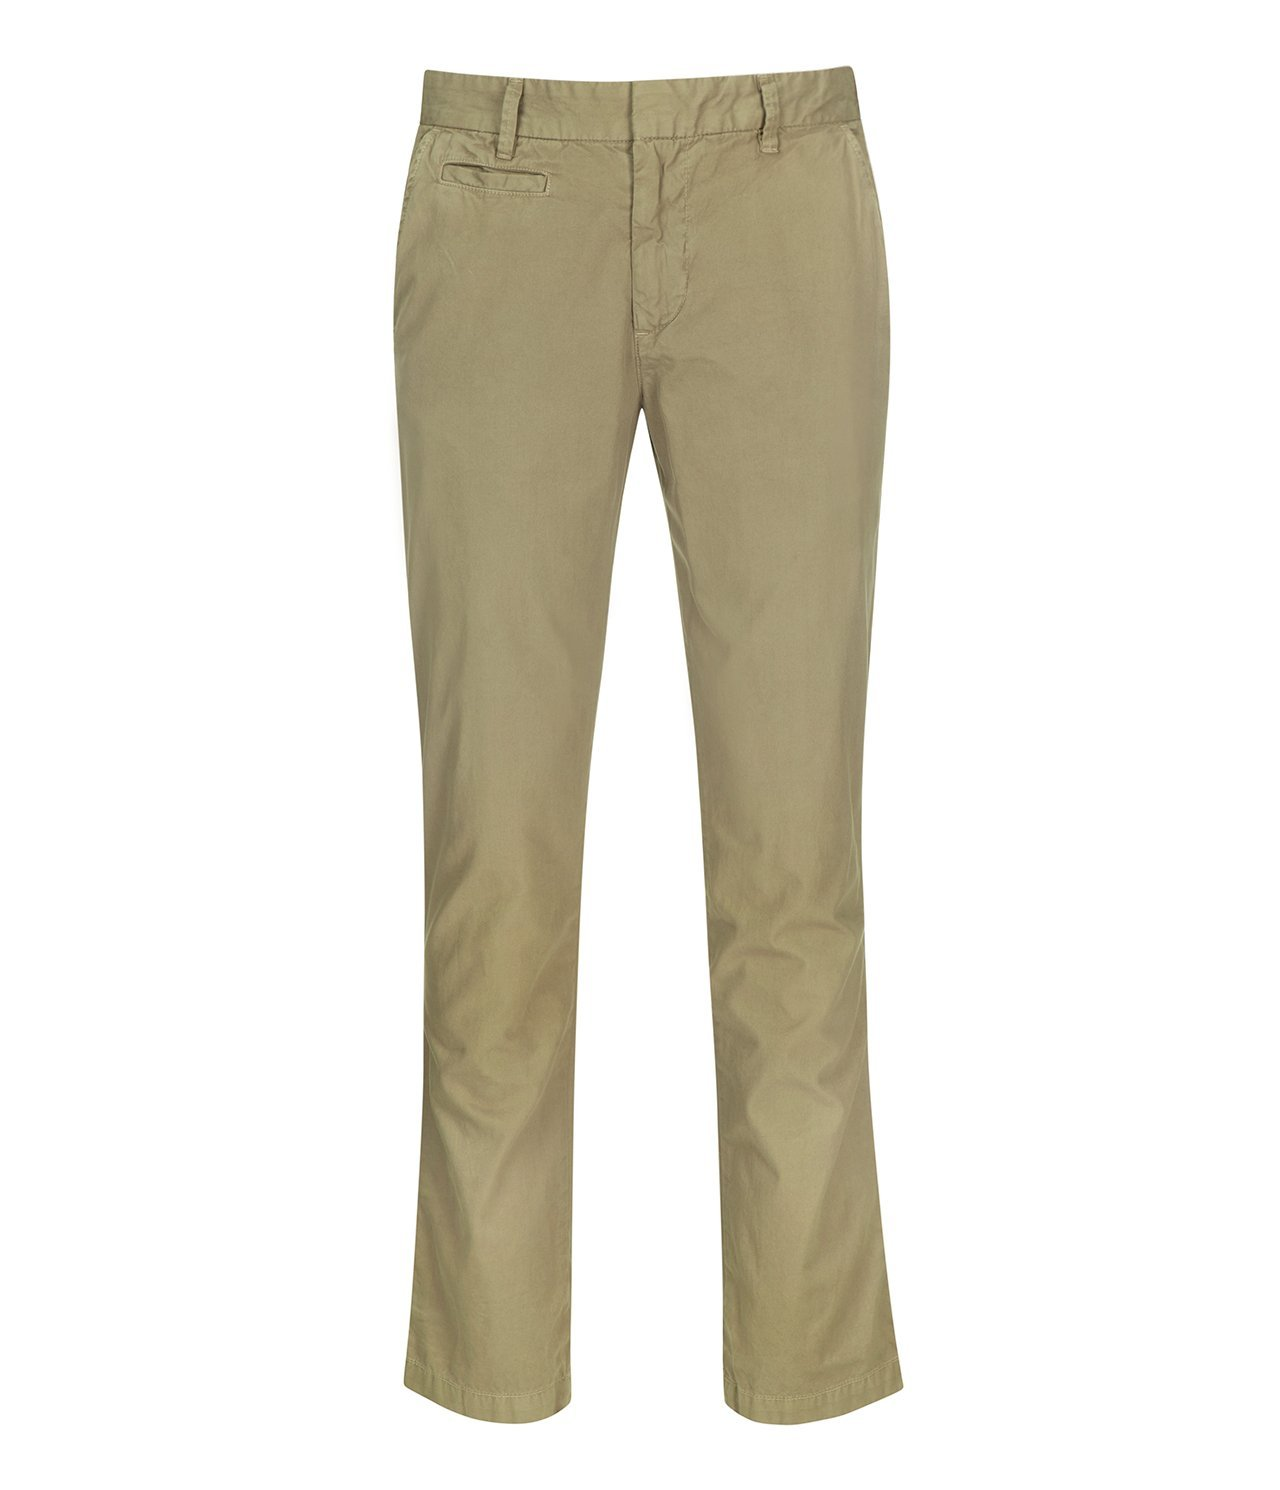 Save Khaki Men's Slim Trouser SK933-US Dust Khaki SZ 32